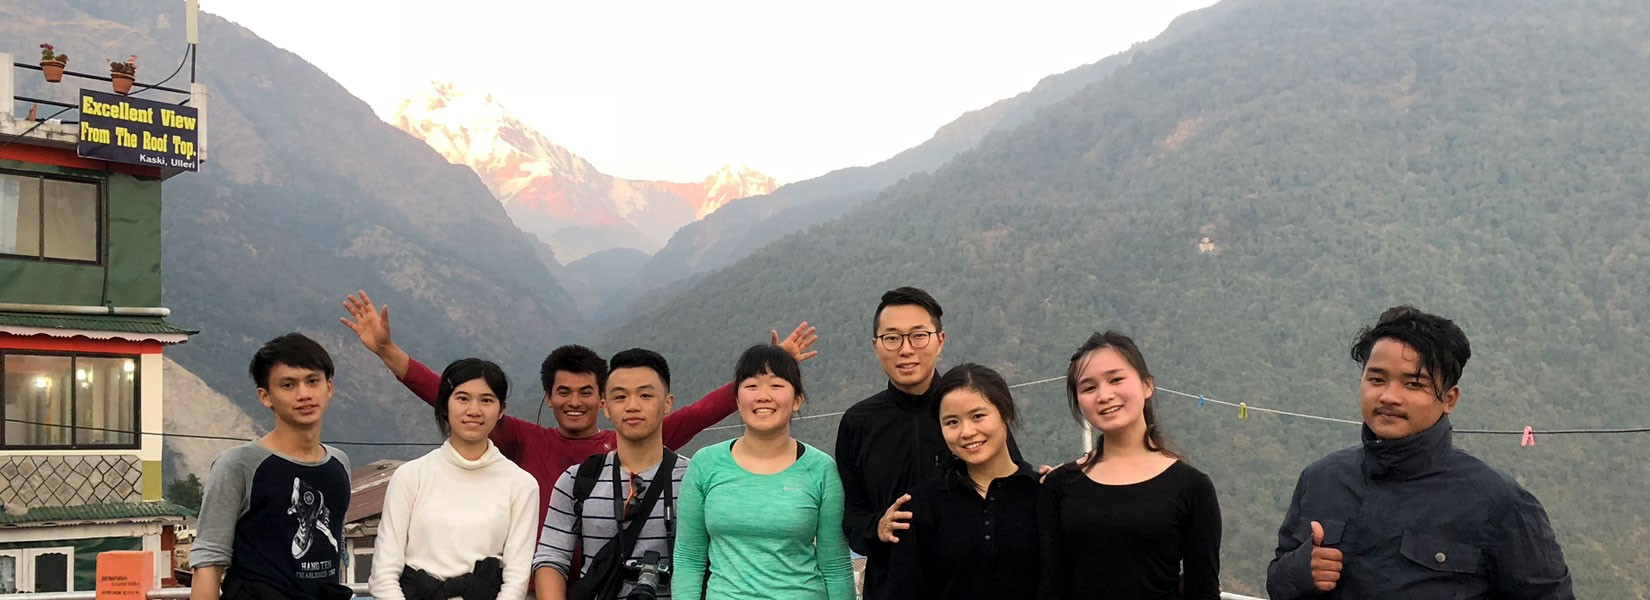 Poon Hill Family Trekking